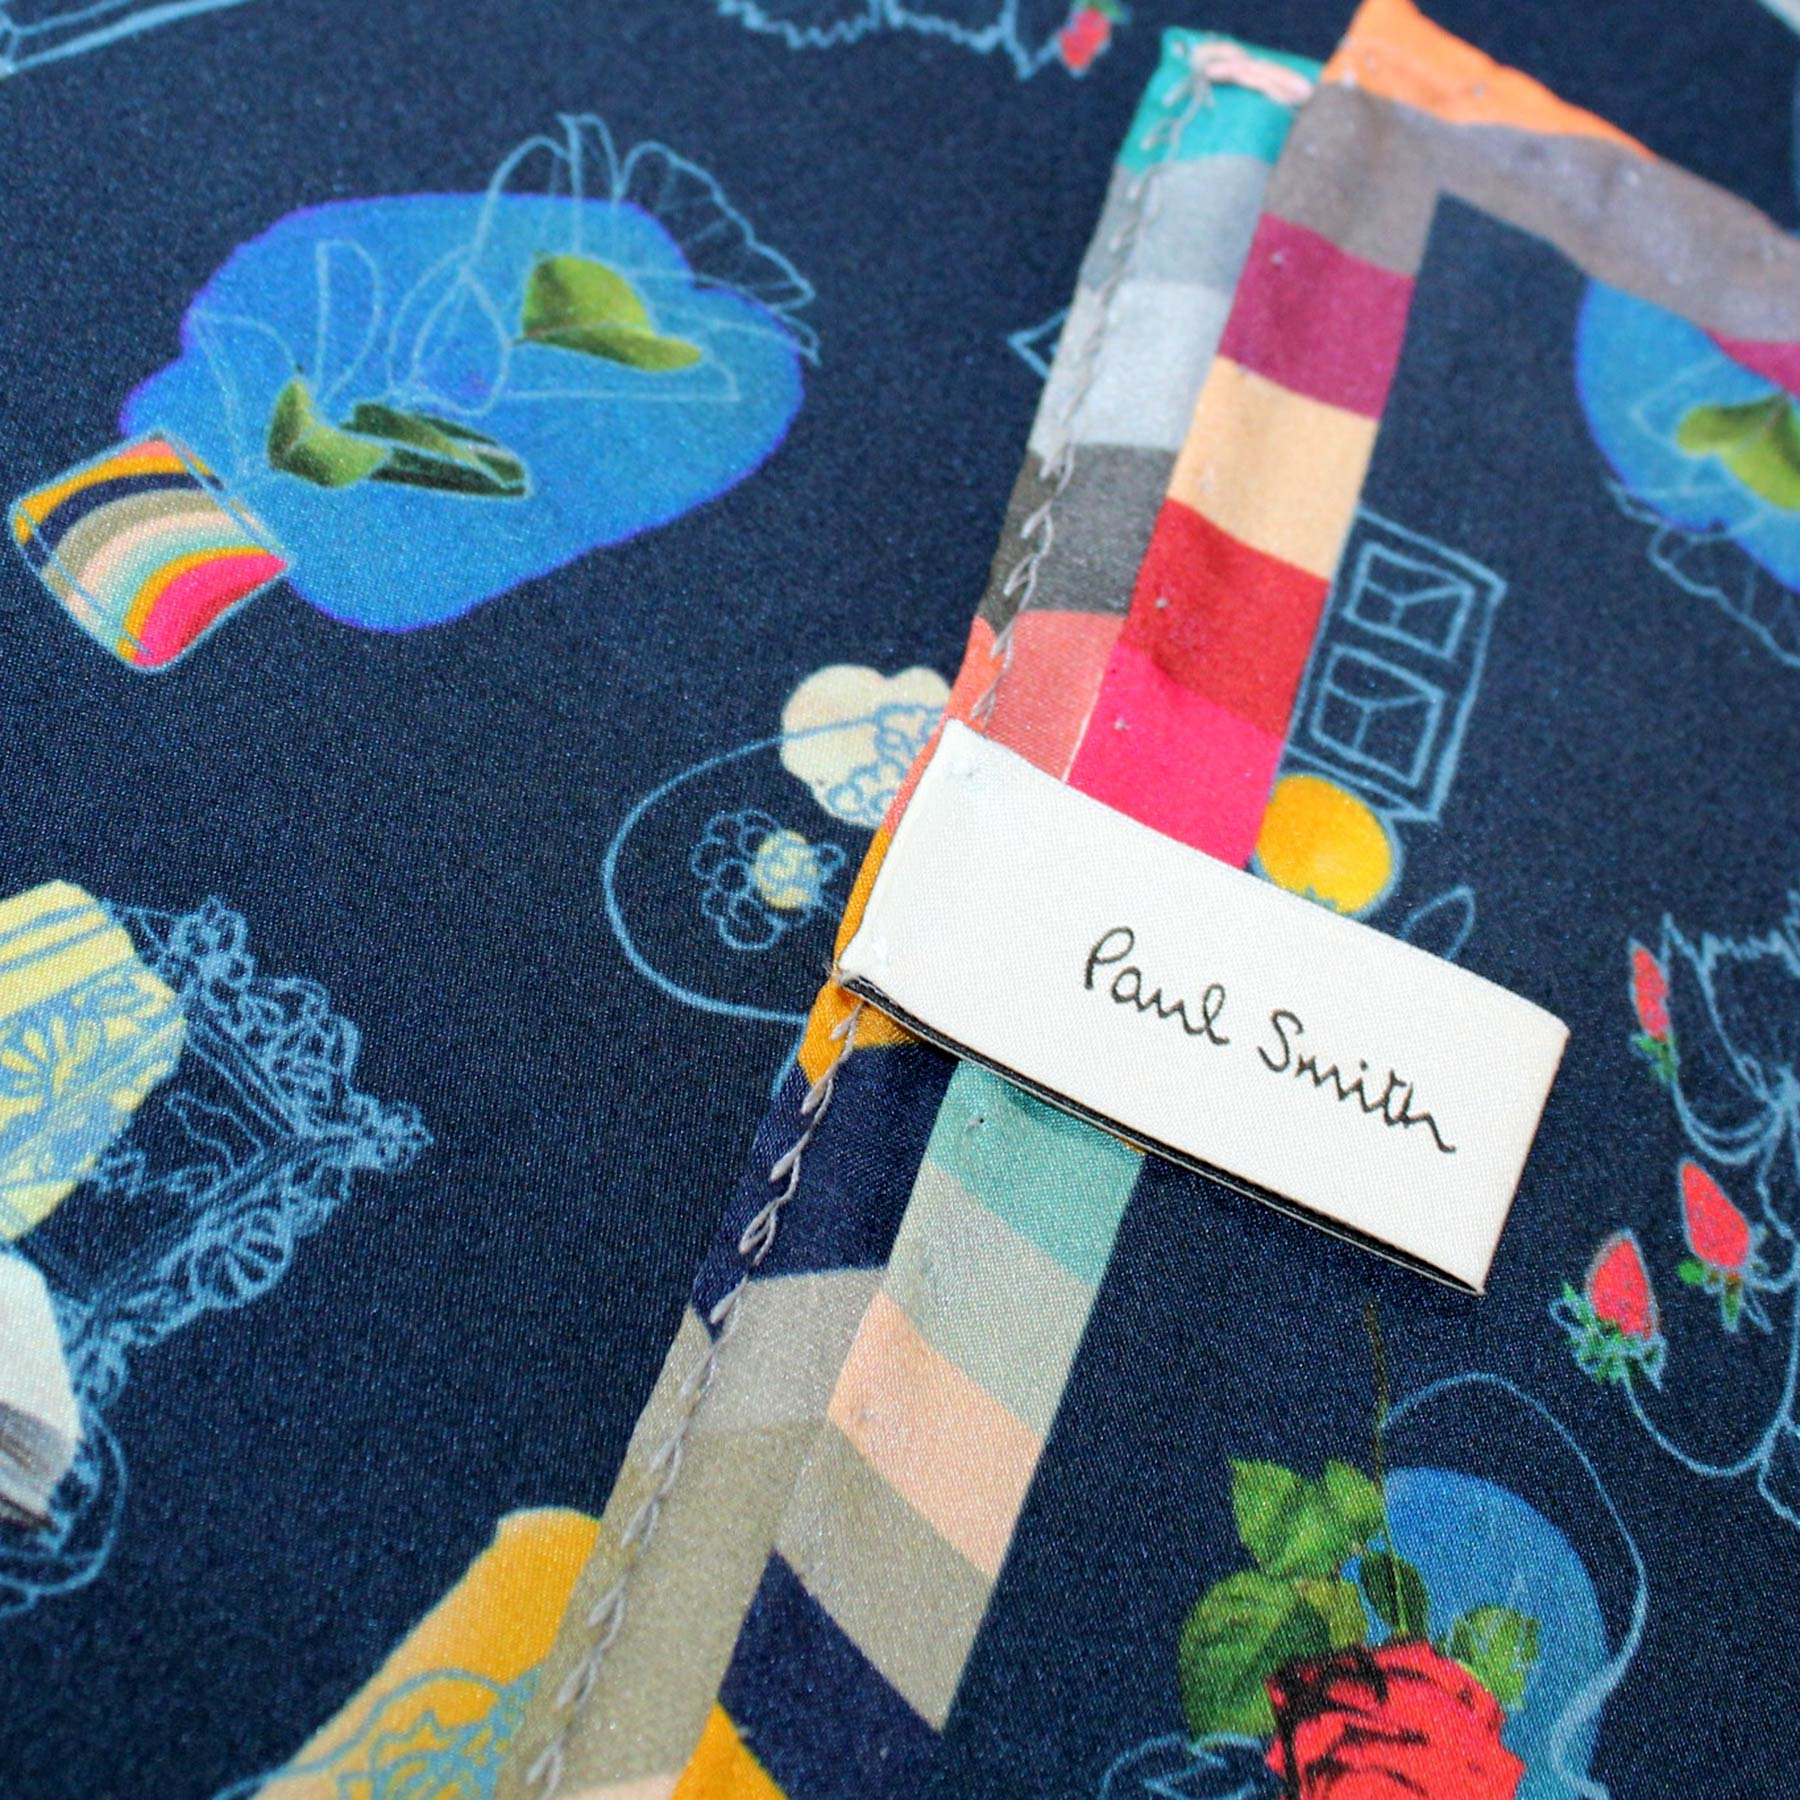 Paul Smith Silk Scarf Navy Novelty - Women Collection SALE